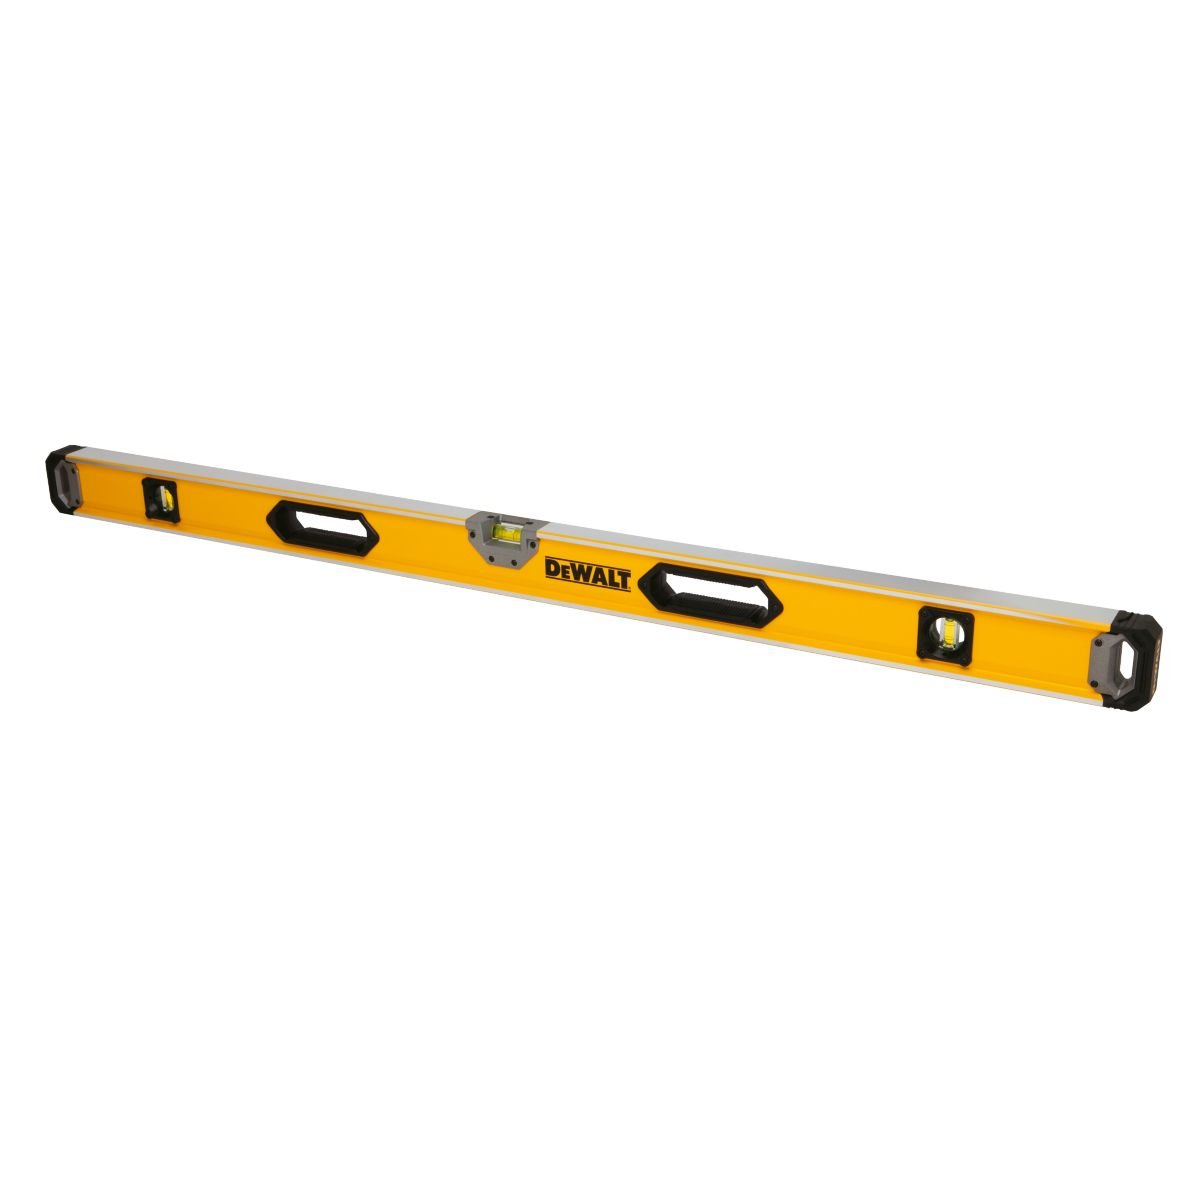 DeWalt Box Beam Level 1220mm